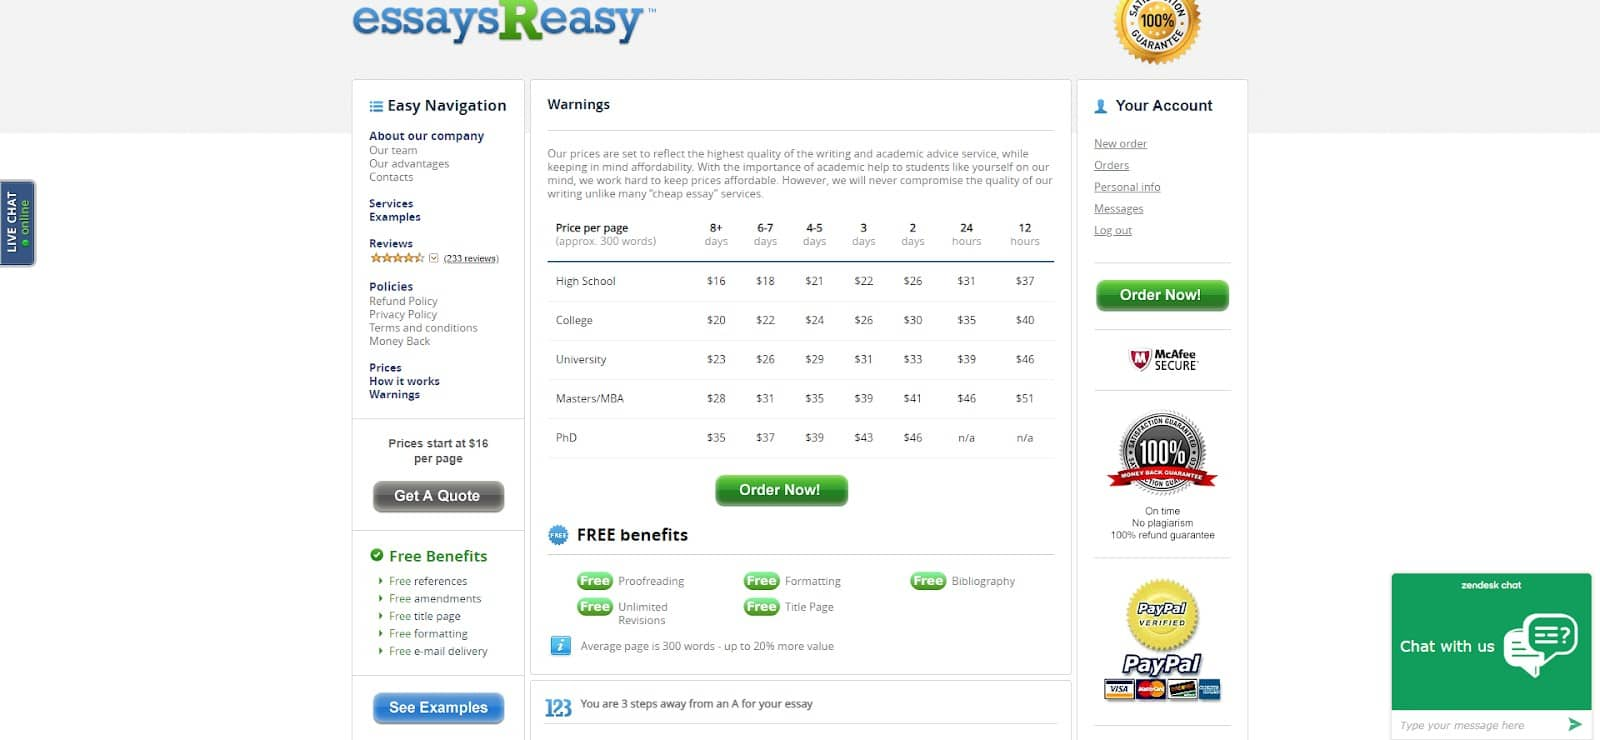 essaysreasy prices